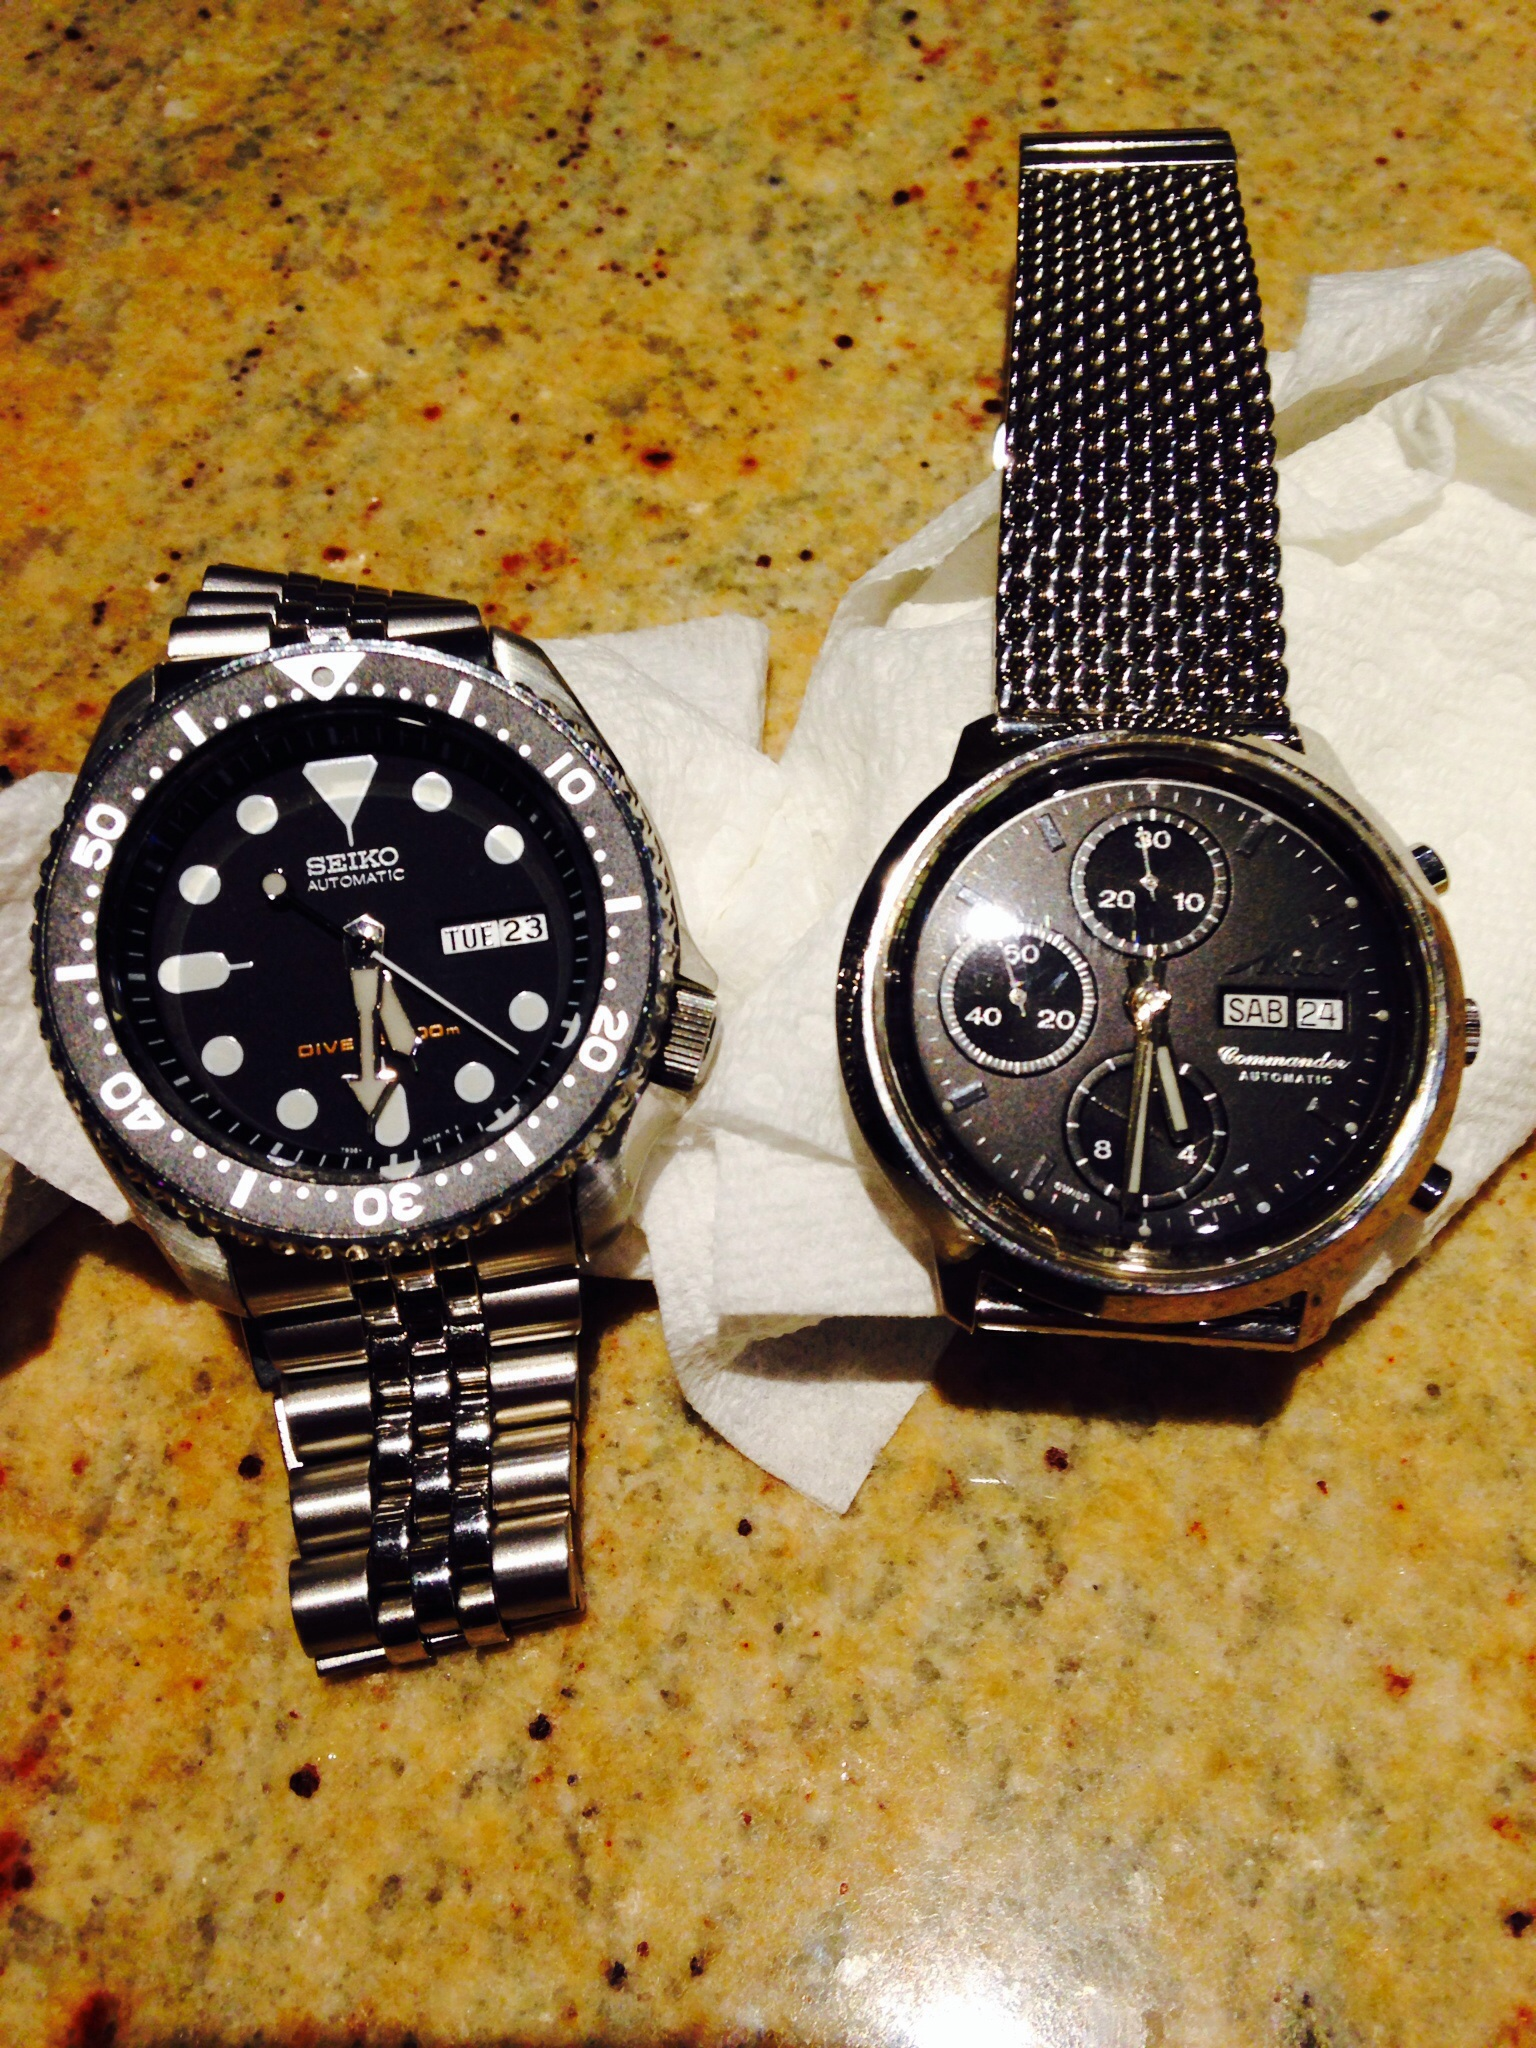 buyers grey retail than discount watch baby watches cheap lower seiko be monster tuna price for ashamed ought to guide on sale flipr market